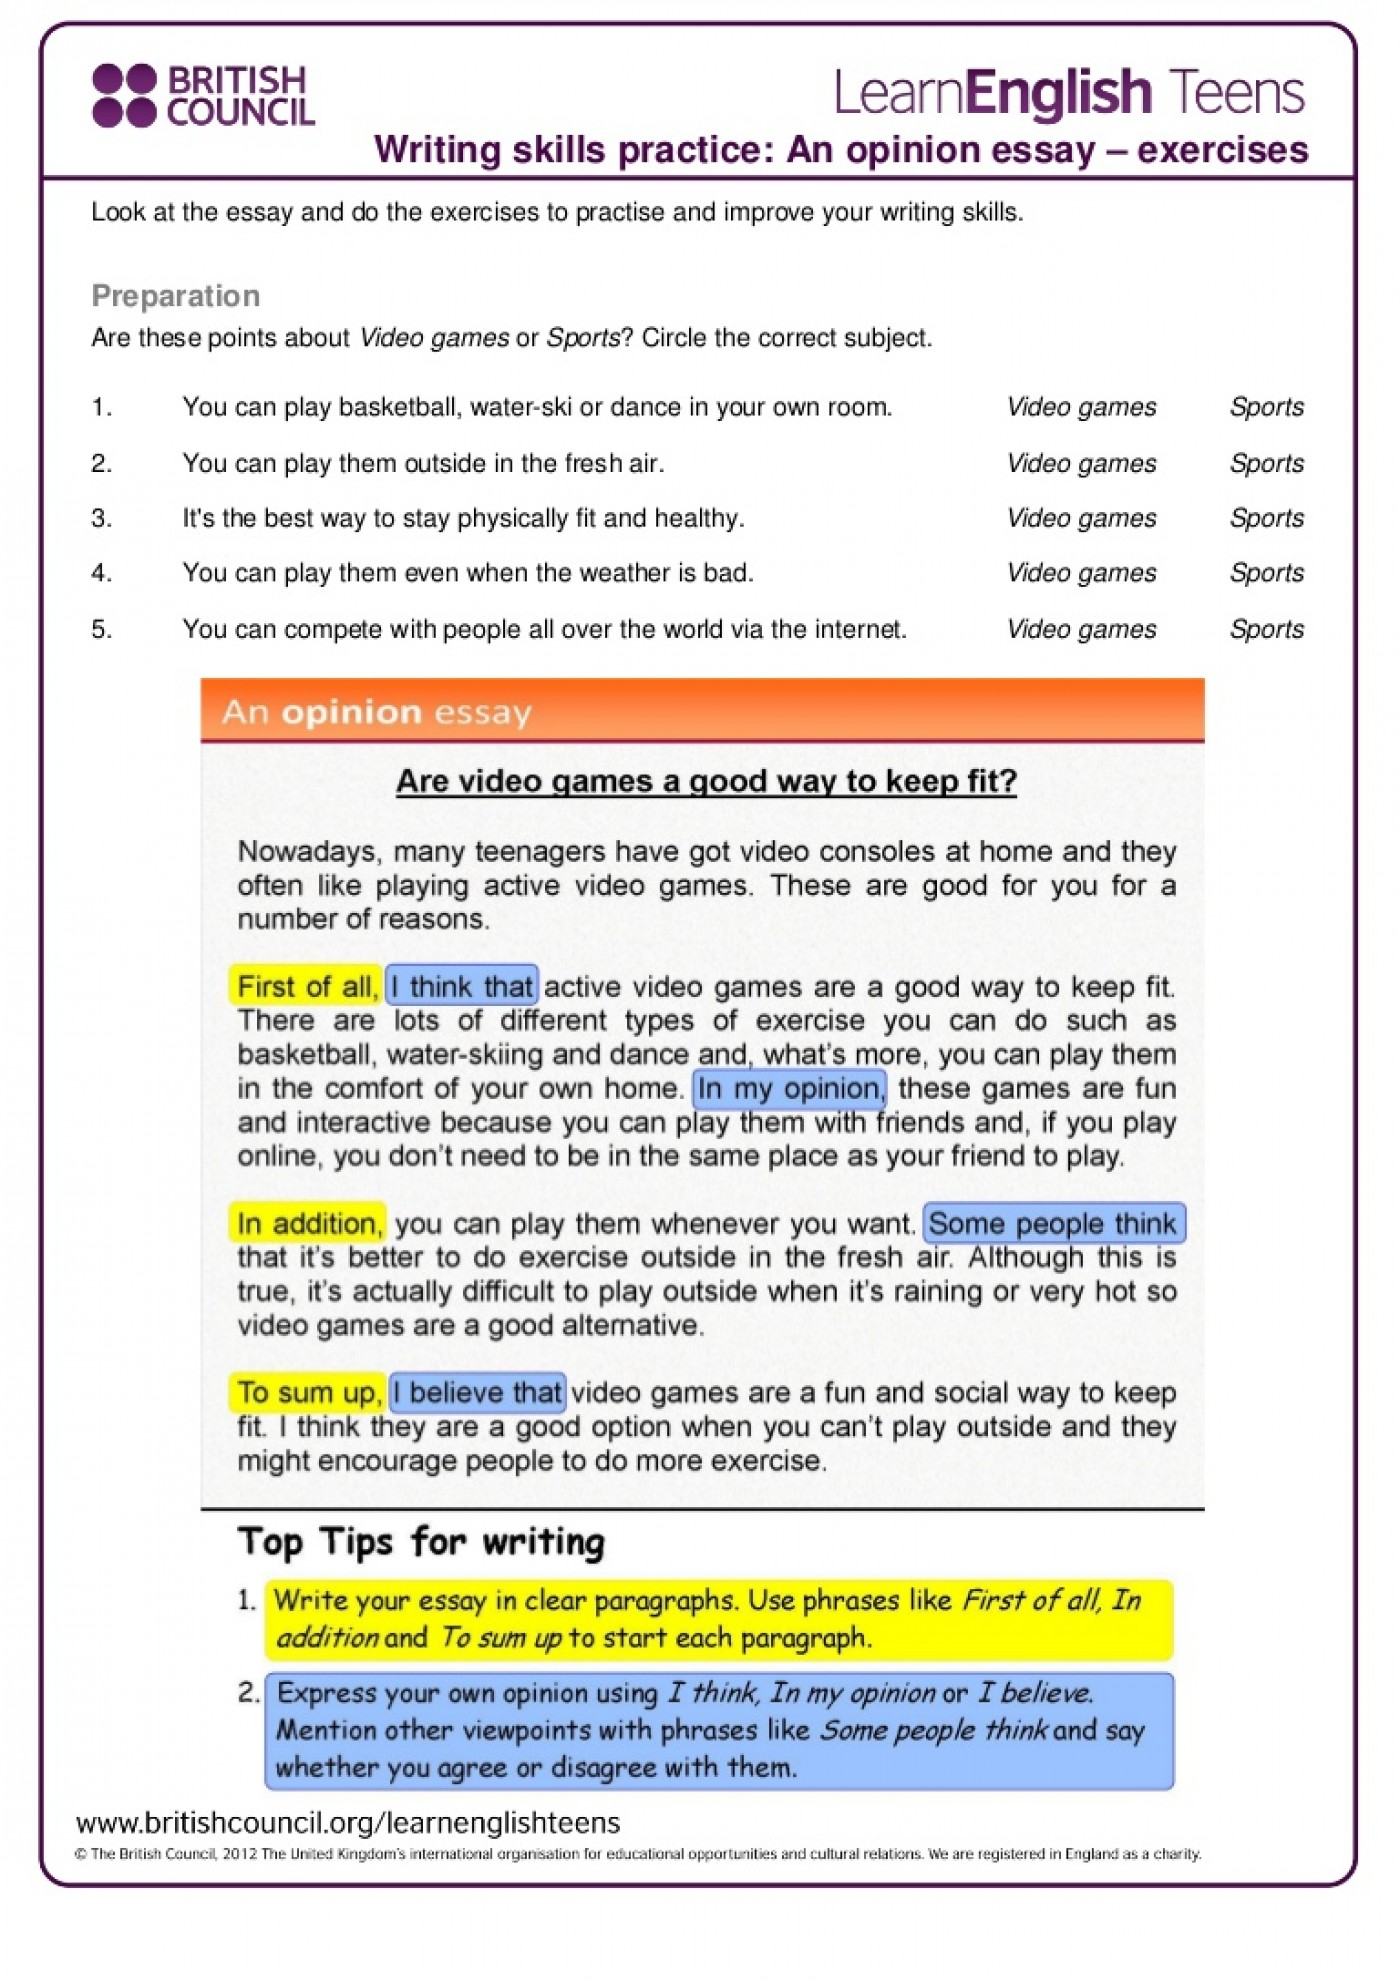 009 Writing Skills Essay Online Ielts Courses Podcast Jc Economics How To Write An Opinion 4th Grade Anopinionessay Exercises Thumbn Unbelievable 3rd College 1400